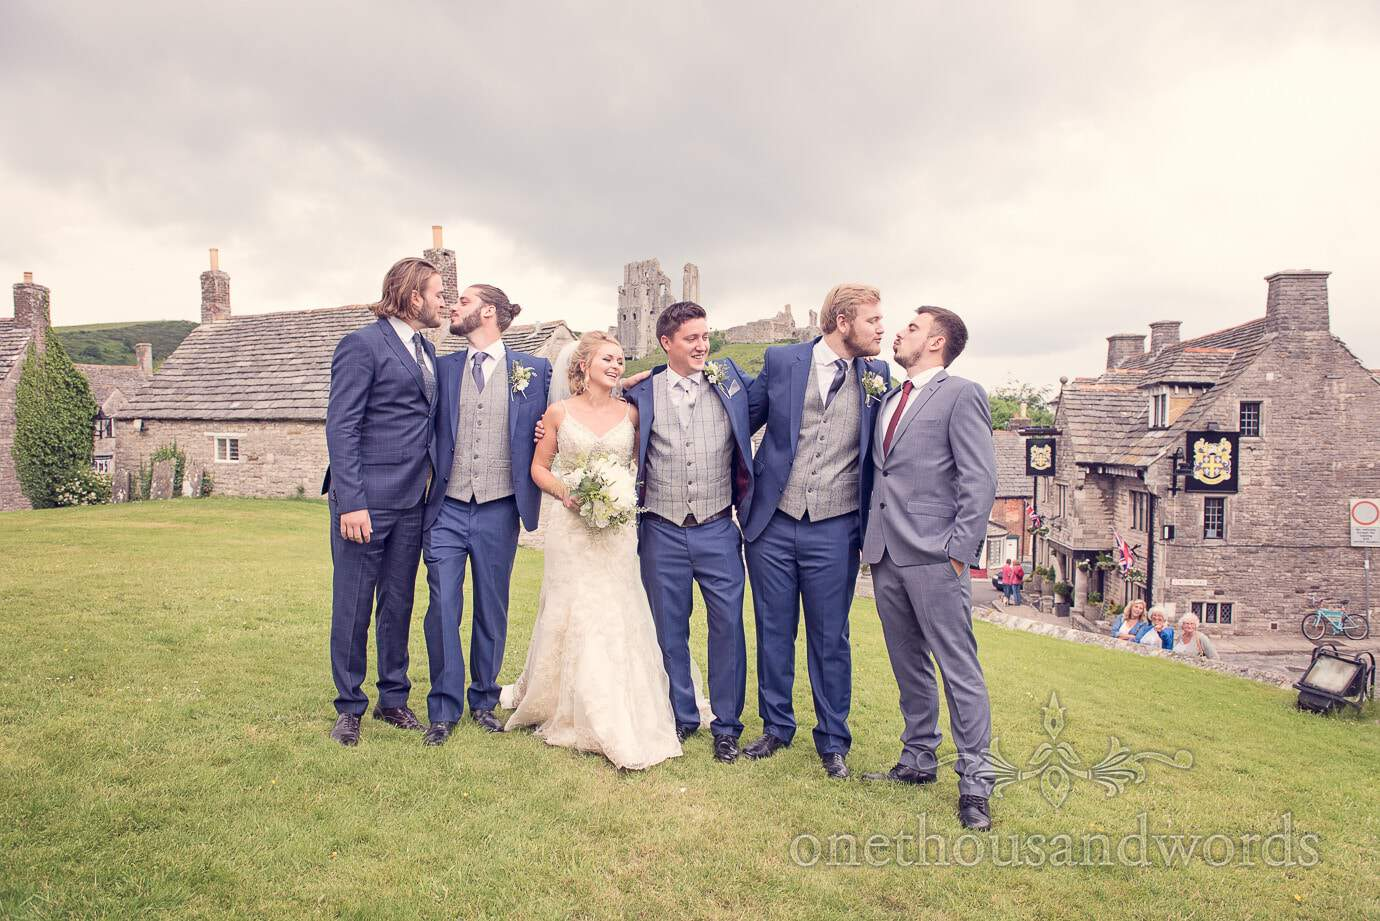 Groomsmen kiss during group photographs at Corfe Castle wedding